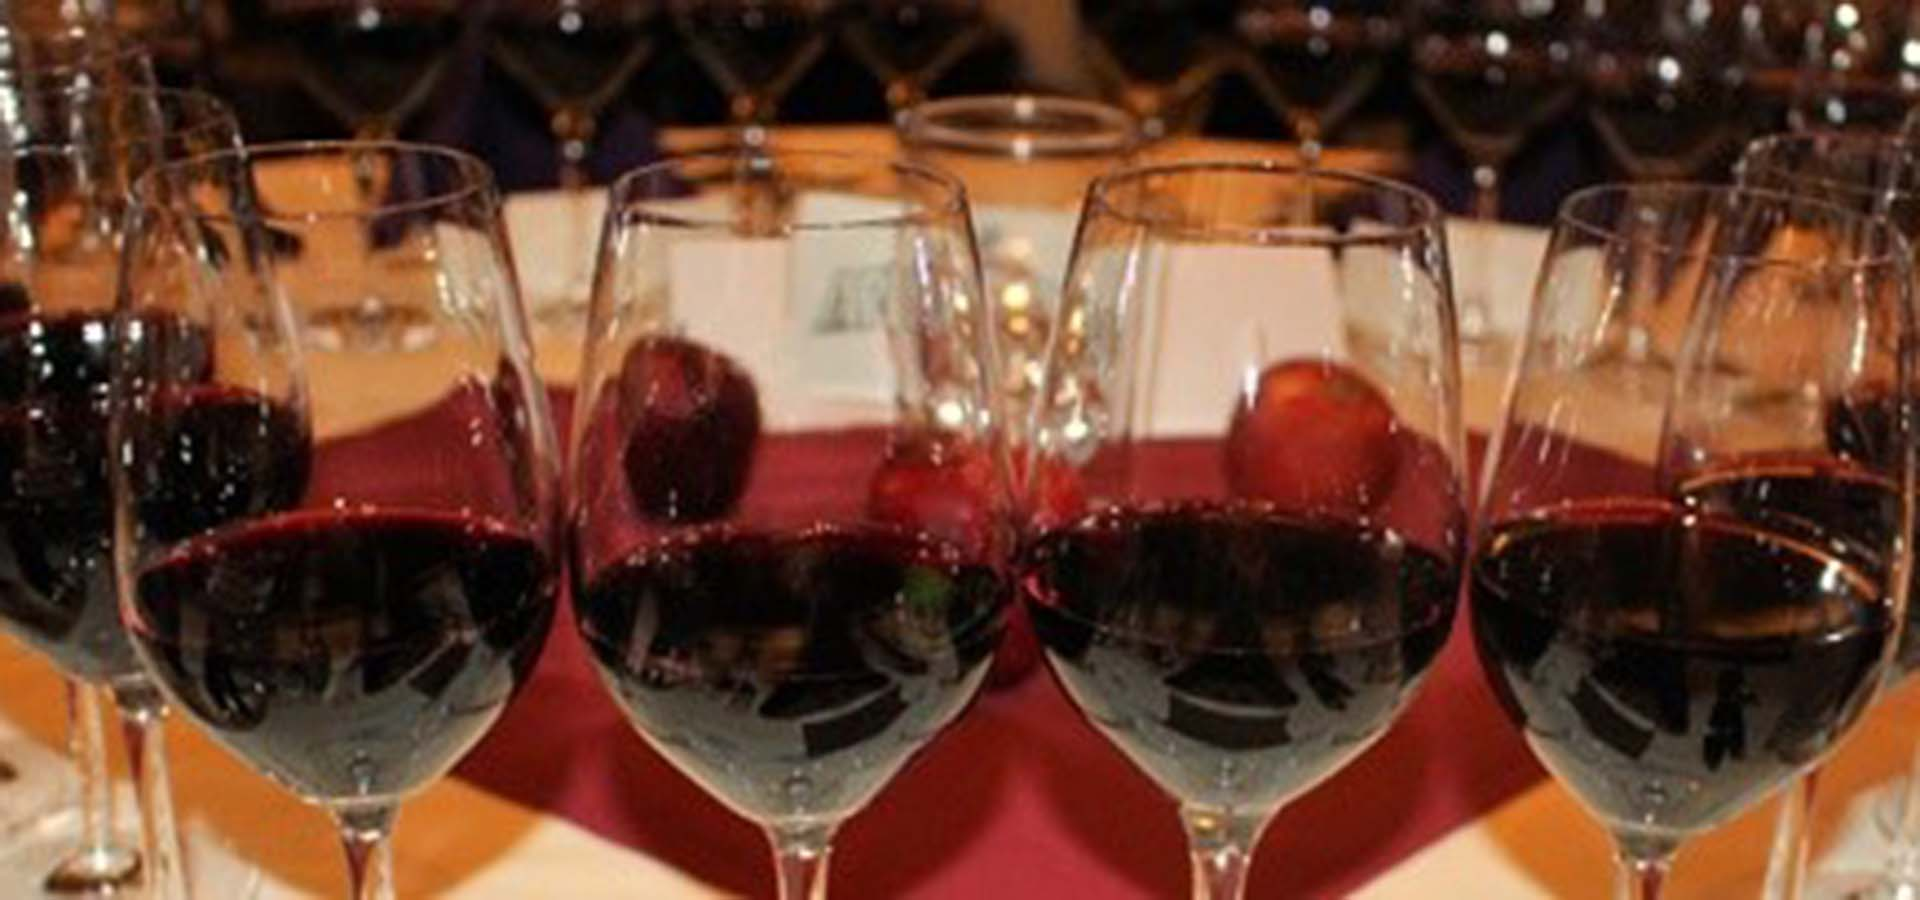 Table full of glasses of red wine.